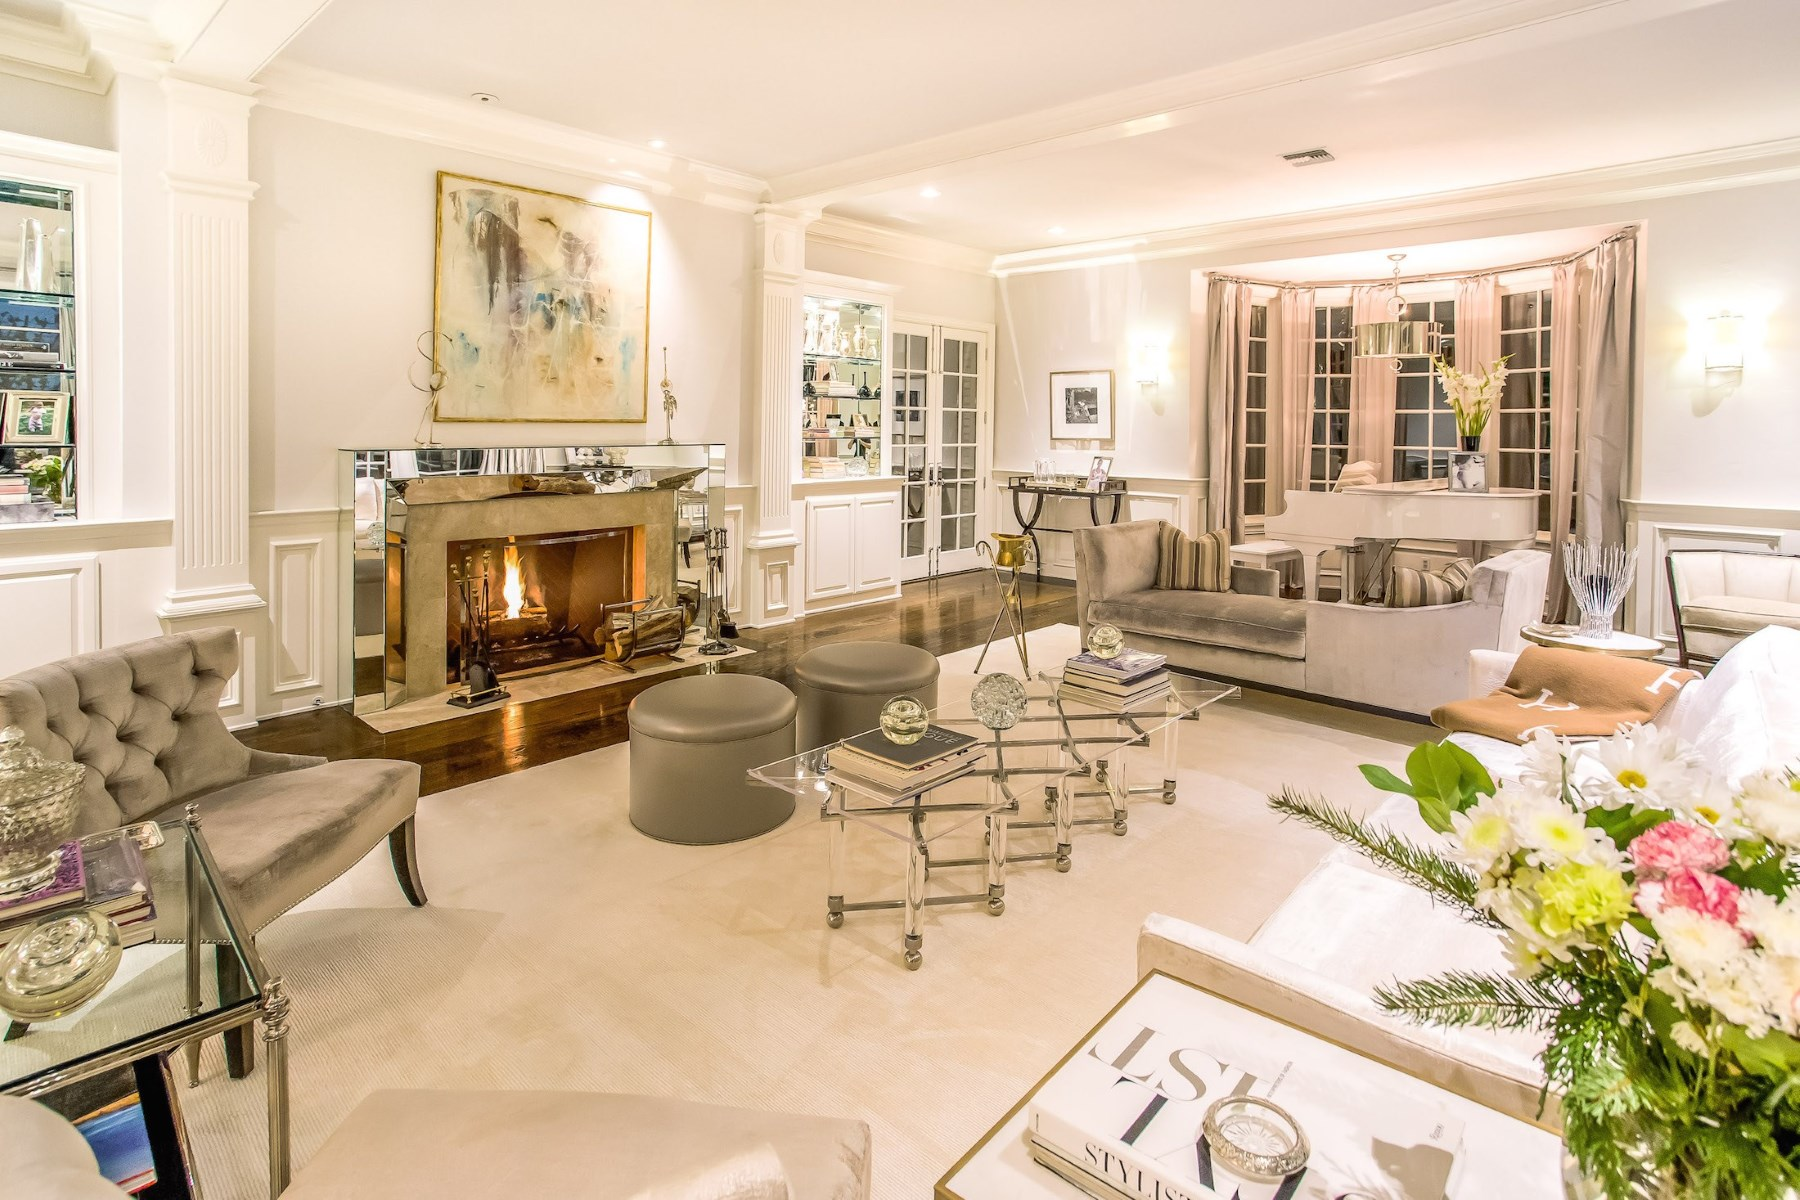 Single Family Home for Sale at Relax and Entertain 25067 Jim Bridger Road Calabasas, California 91302 United States